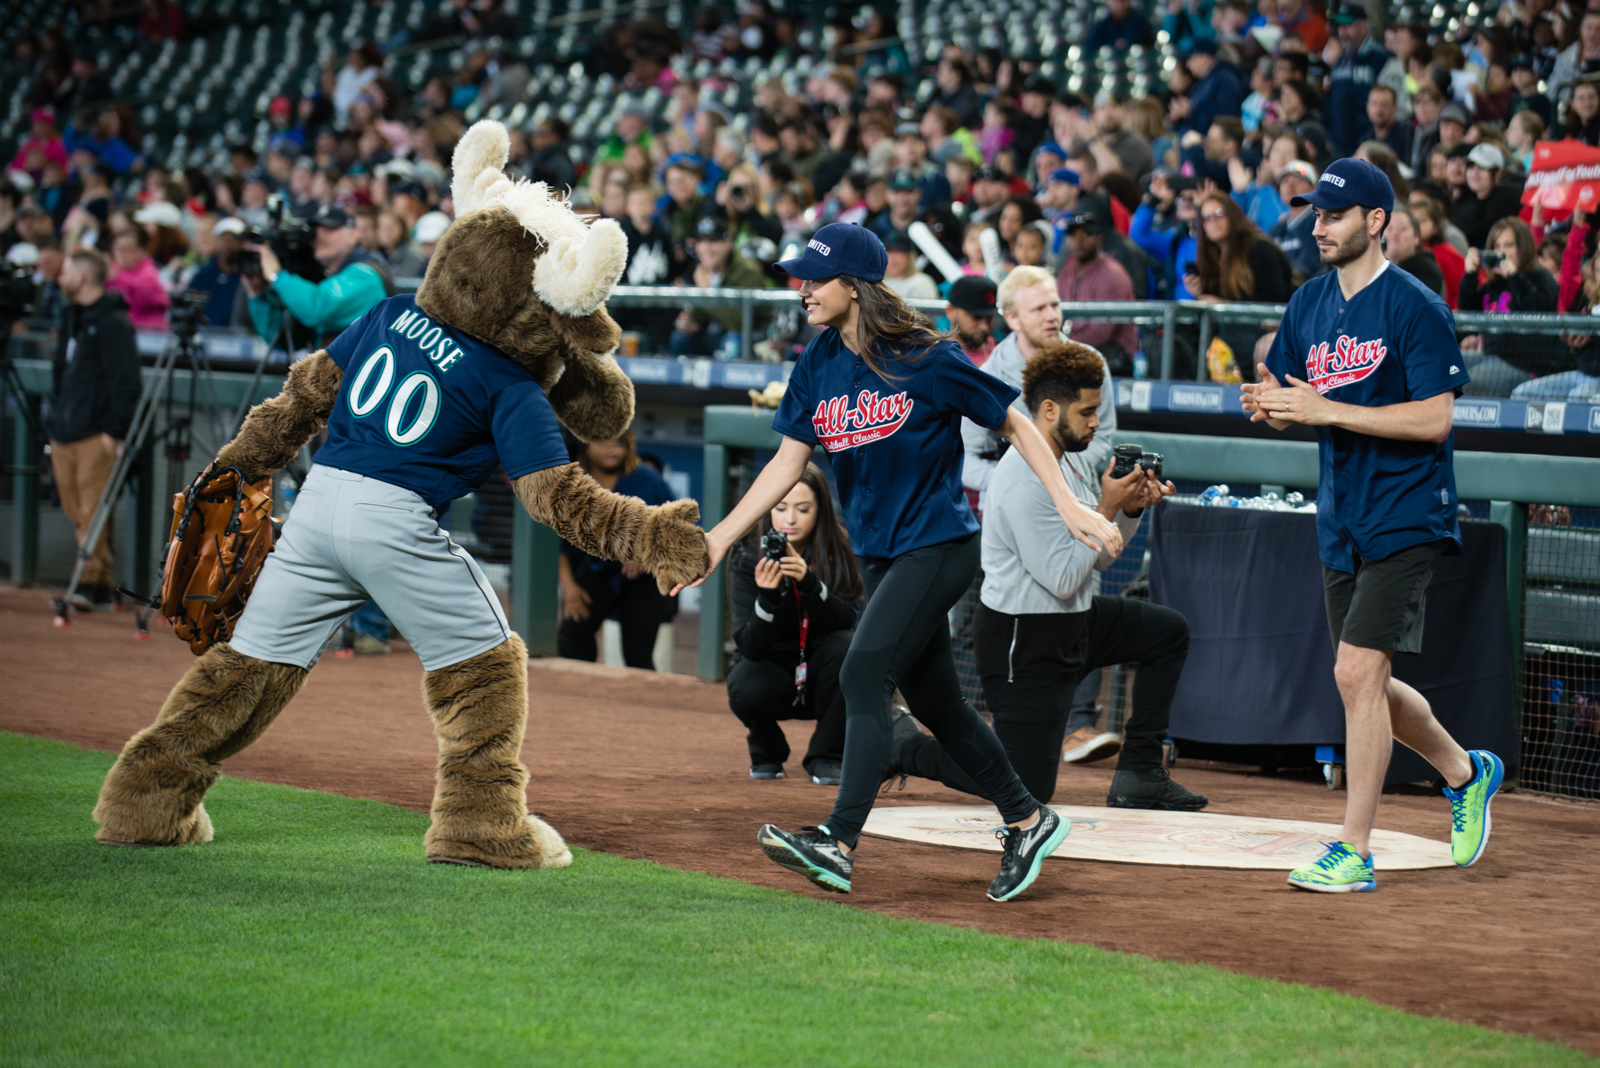 The stars flocked out to Safeco Field this afternoon to bat up against youth homelessness. Put on by United Way, everyone from Macklemore and Ben Gibbard to Jay Buhner and KOMO's very own Mary Nam were in attendance. Click through for photos from the game. (Image: Chona Kasinger/ Seattle Refined)